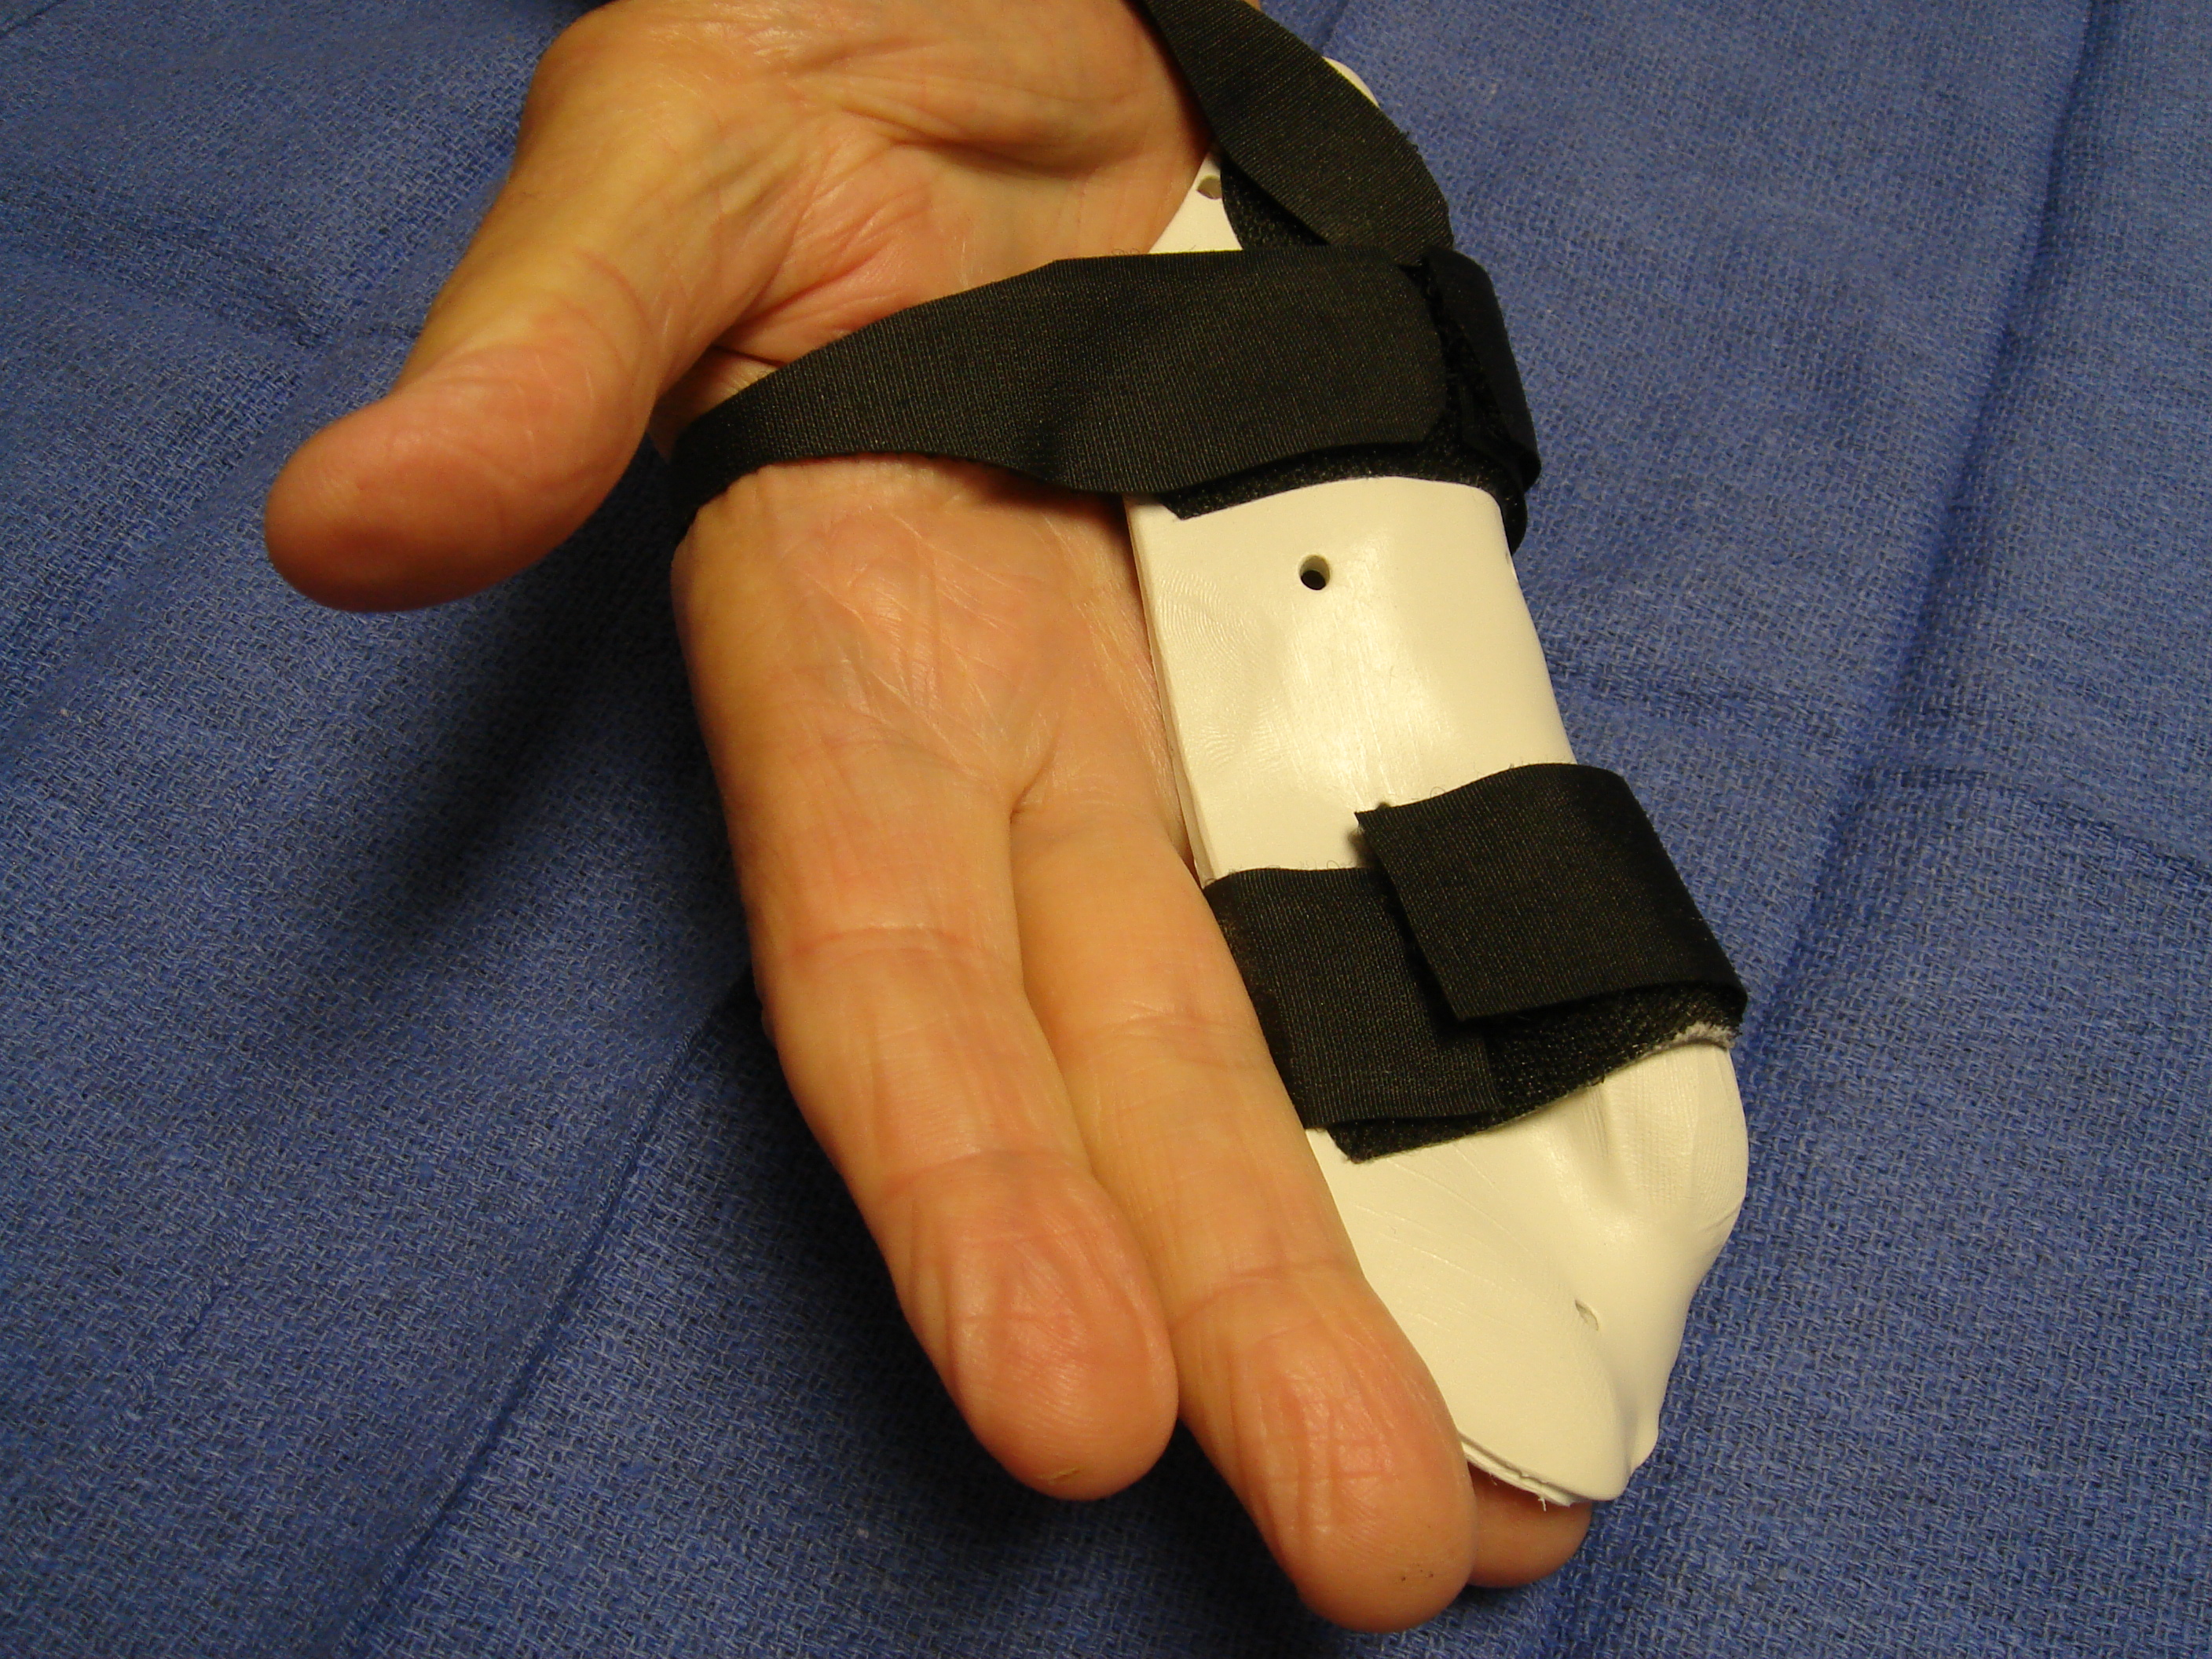 Figure 2d: These photographs illustrate the patient's hand 7 days post-enzyme injection. The custom thermoplastic night splint is shown; the palmar skin tear and MP crease bruise are healing.